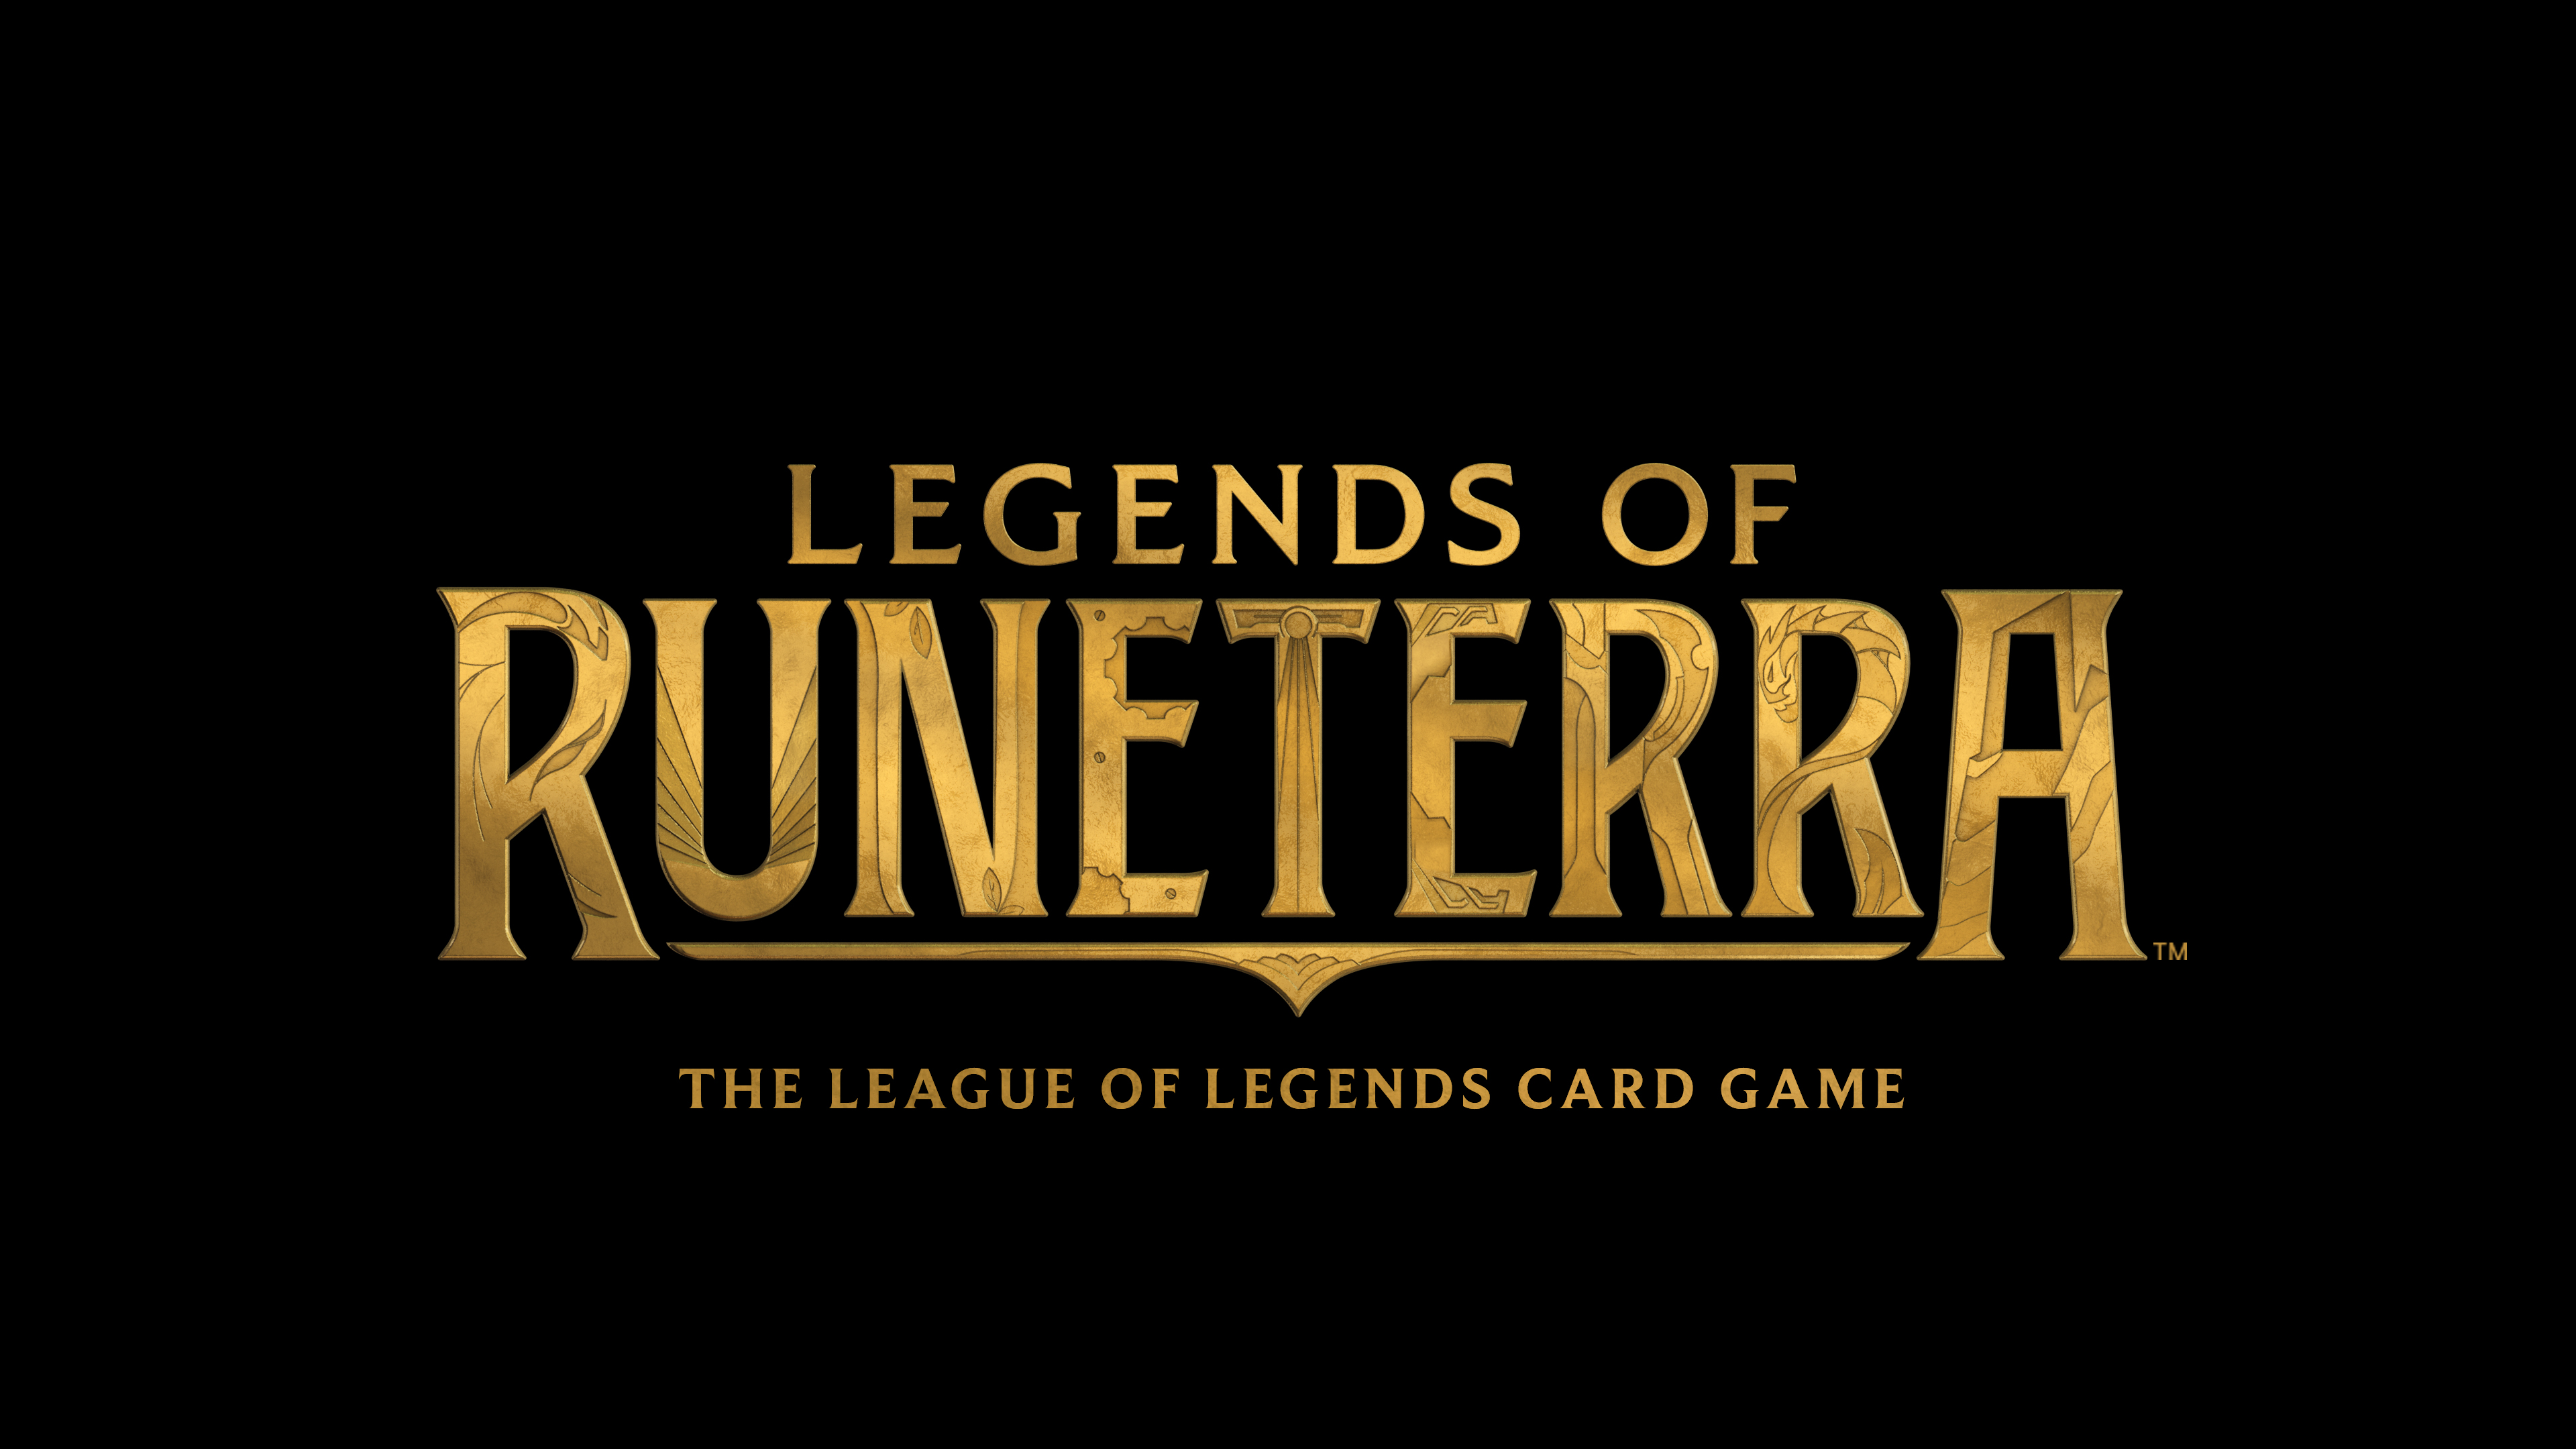 How To Download Leagues Card Game Legends Of Runeterra